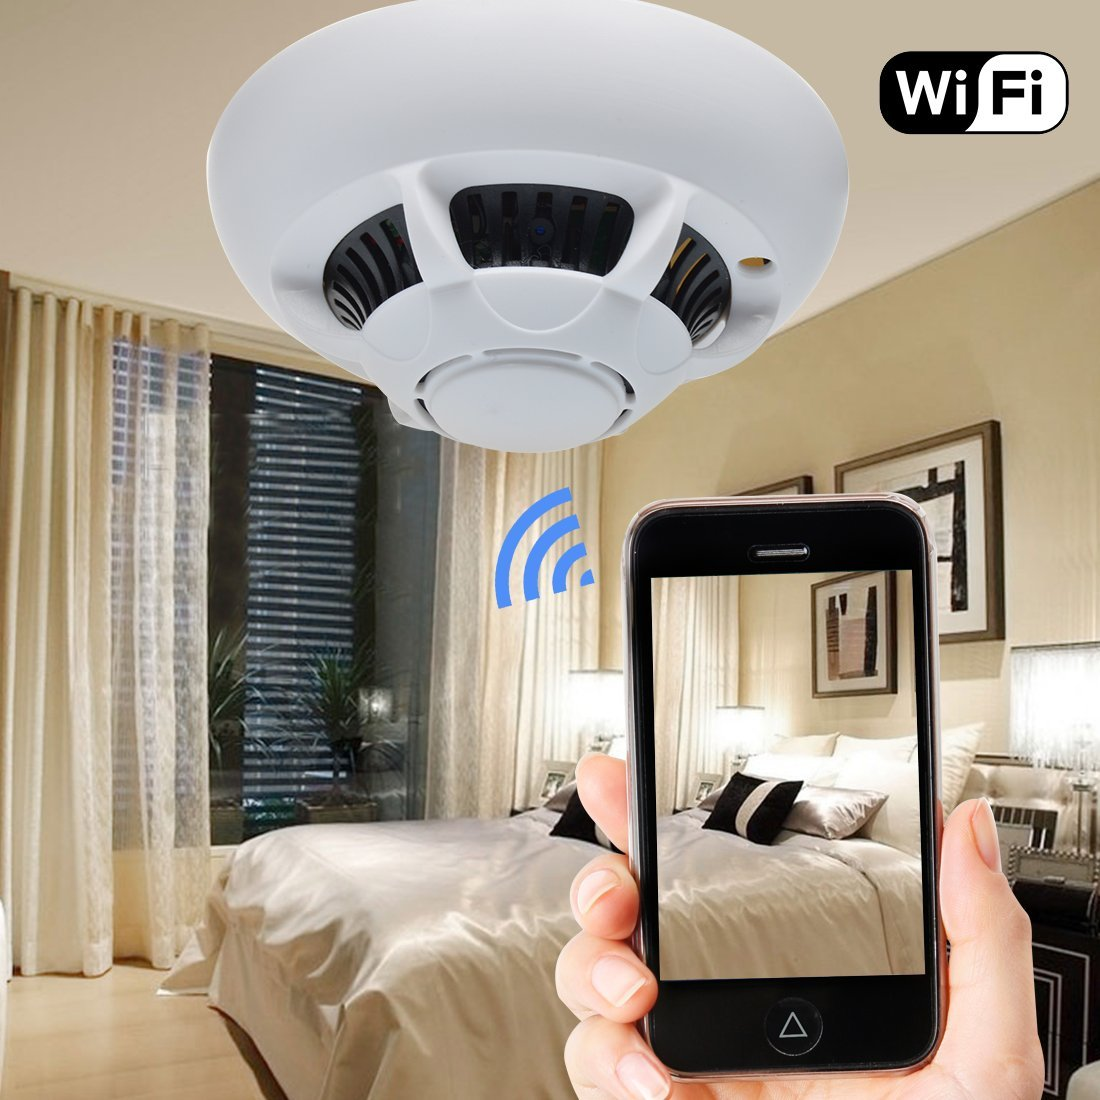 cam ra ufo wifi autonome cam ra wifi hd blanc. Black Bedroom Furniture Sets. Home Design Ideas